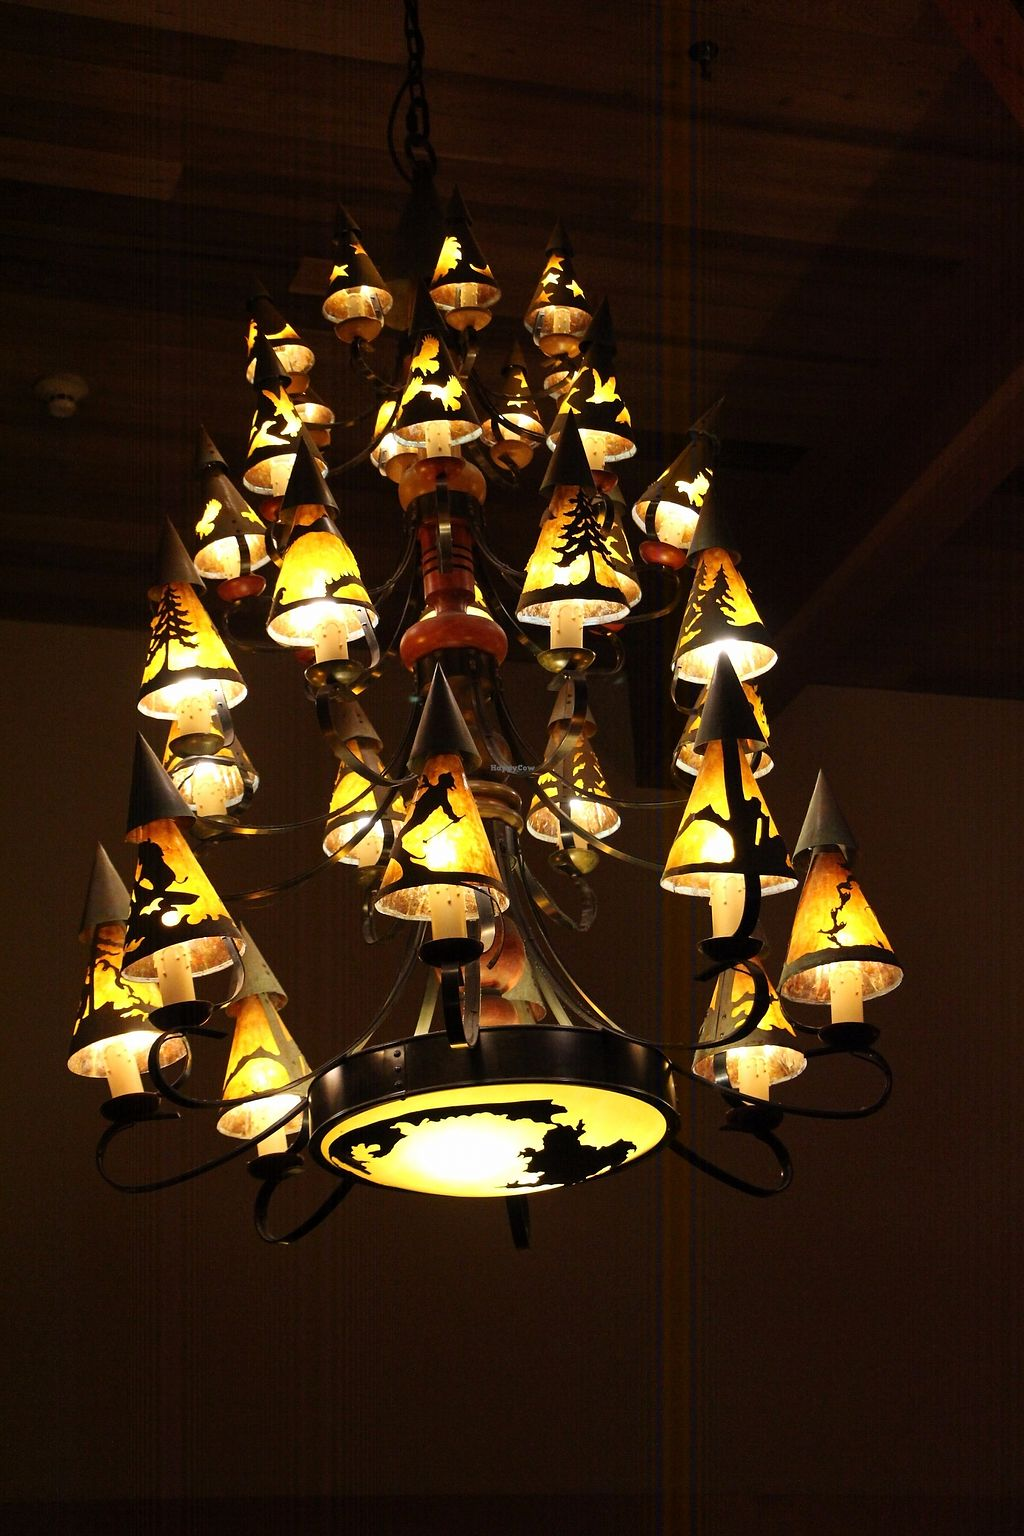 """Photo of Old Faithful Snow Lodge Obsidian Dining Room  by <a href=""""/members/profile/Drhannahj"""">Drhannahj</a> <br/>Old Faithful Snow Lodge Obsidian Dining Room <br/> August 21, 2017  - <a href='/contact/abuse/image/98015/294994'>Report</a>"""